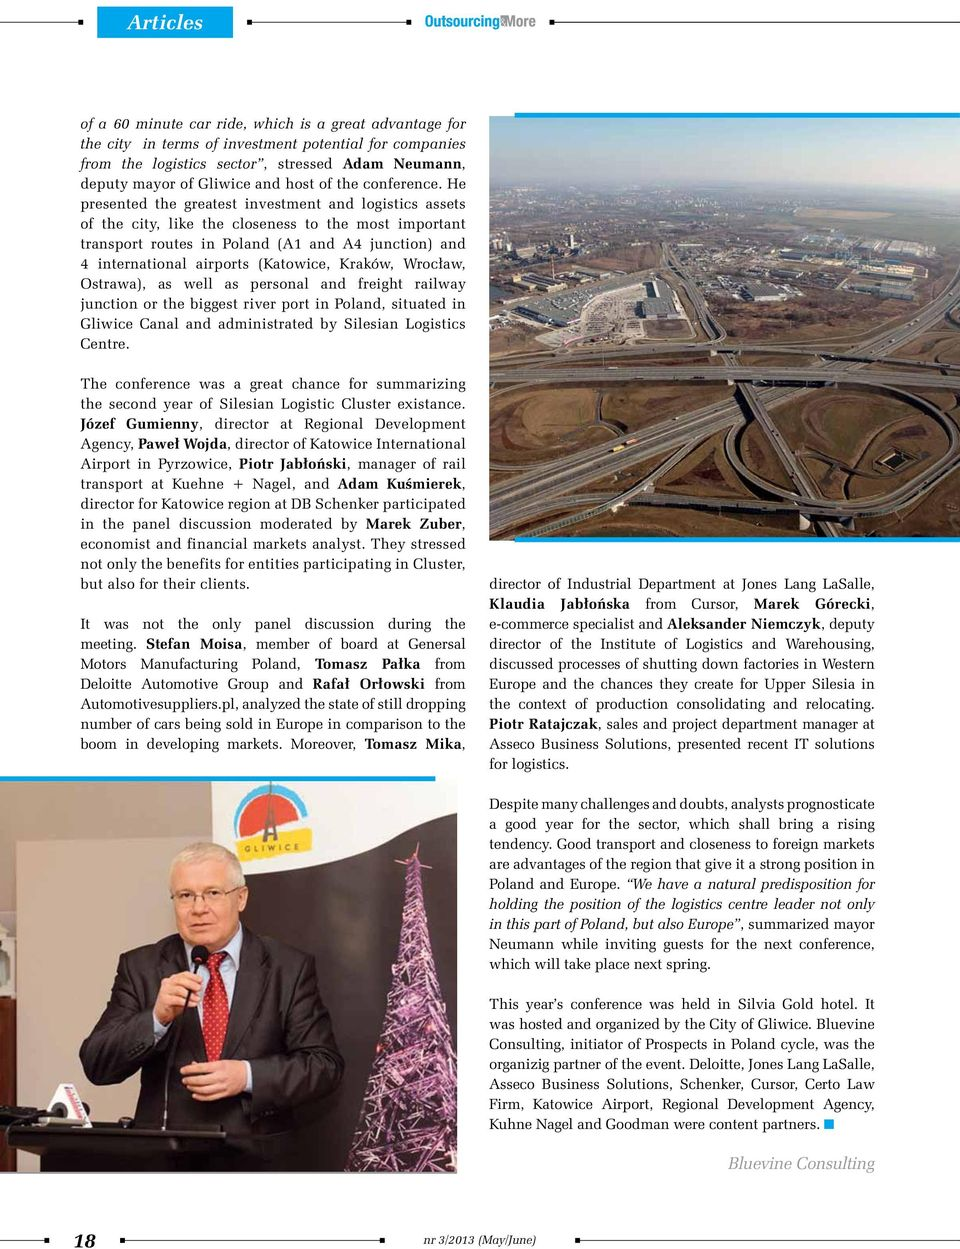 He presented the greatest investment and logistics assets of the city, like the closeness to the most important transport routes in Poland (A1 and A4 junction) and 4 international airports (Katowice,